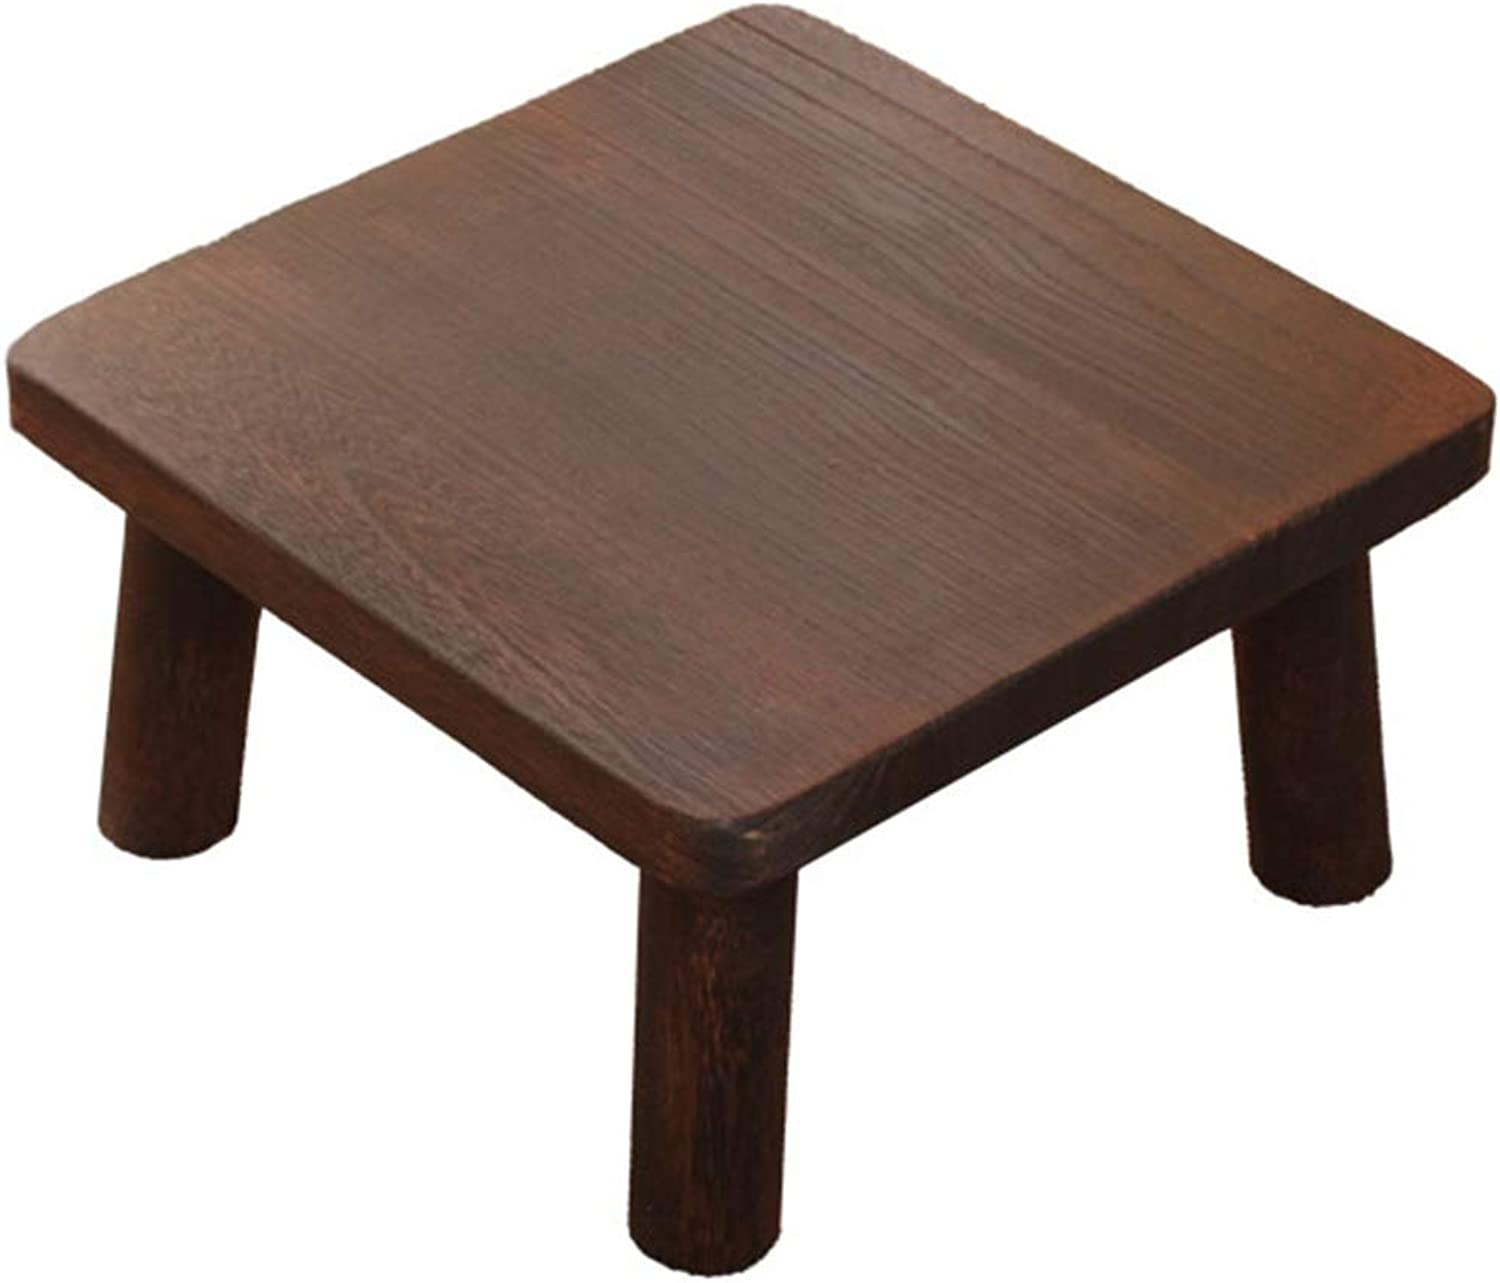 Coffee Tables Table Japanese Household Bay Window Side Square Solid Wood Coffee Table Mini Coffee Table Gift (color   Brown, Size   36  36  21cm)